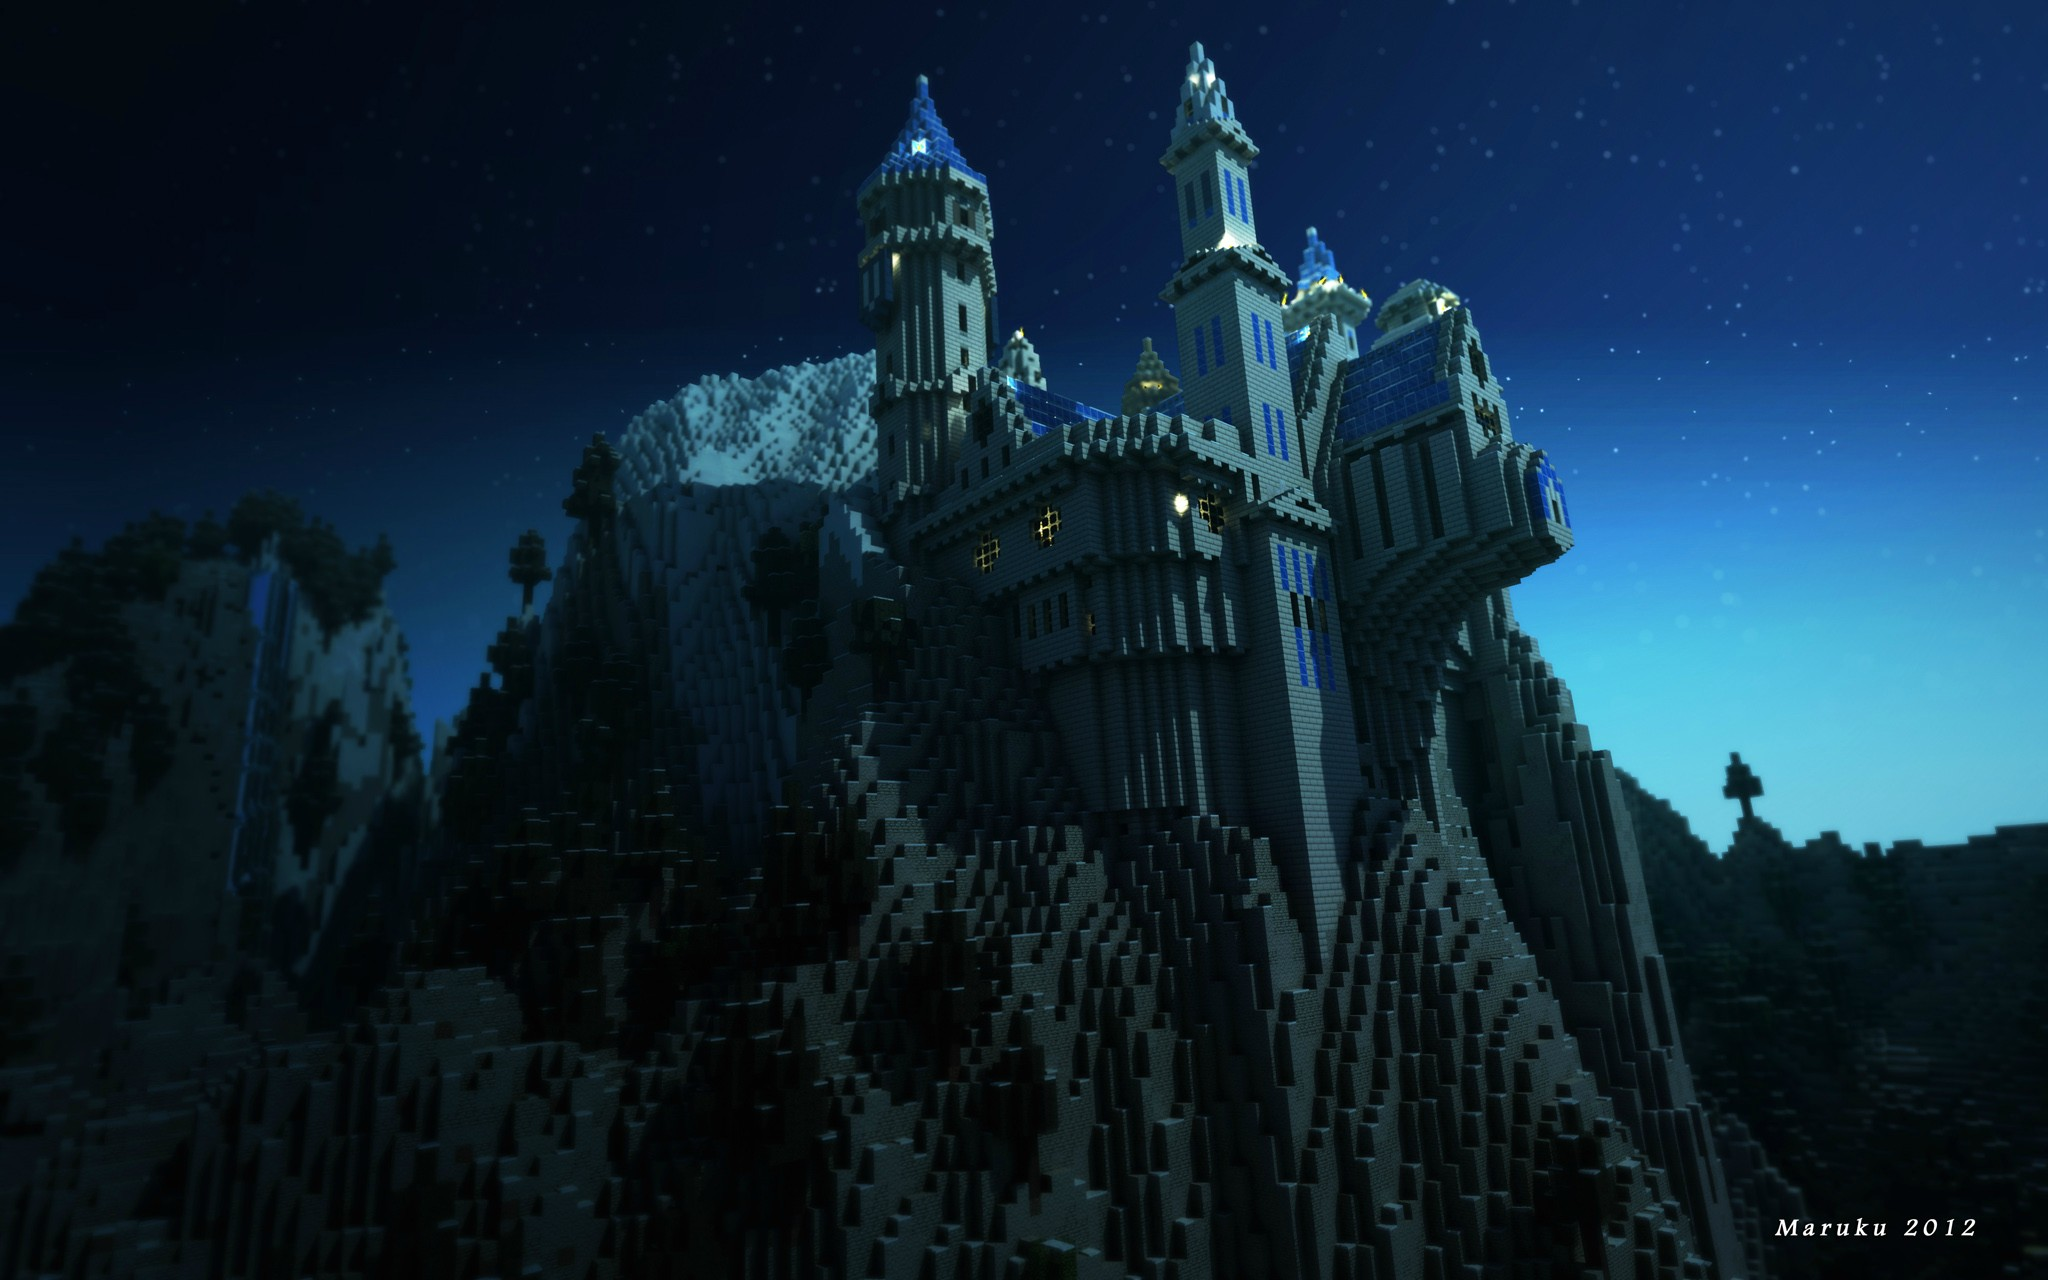 Minecraft Castle Wallpaper Image